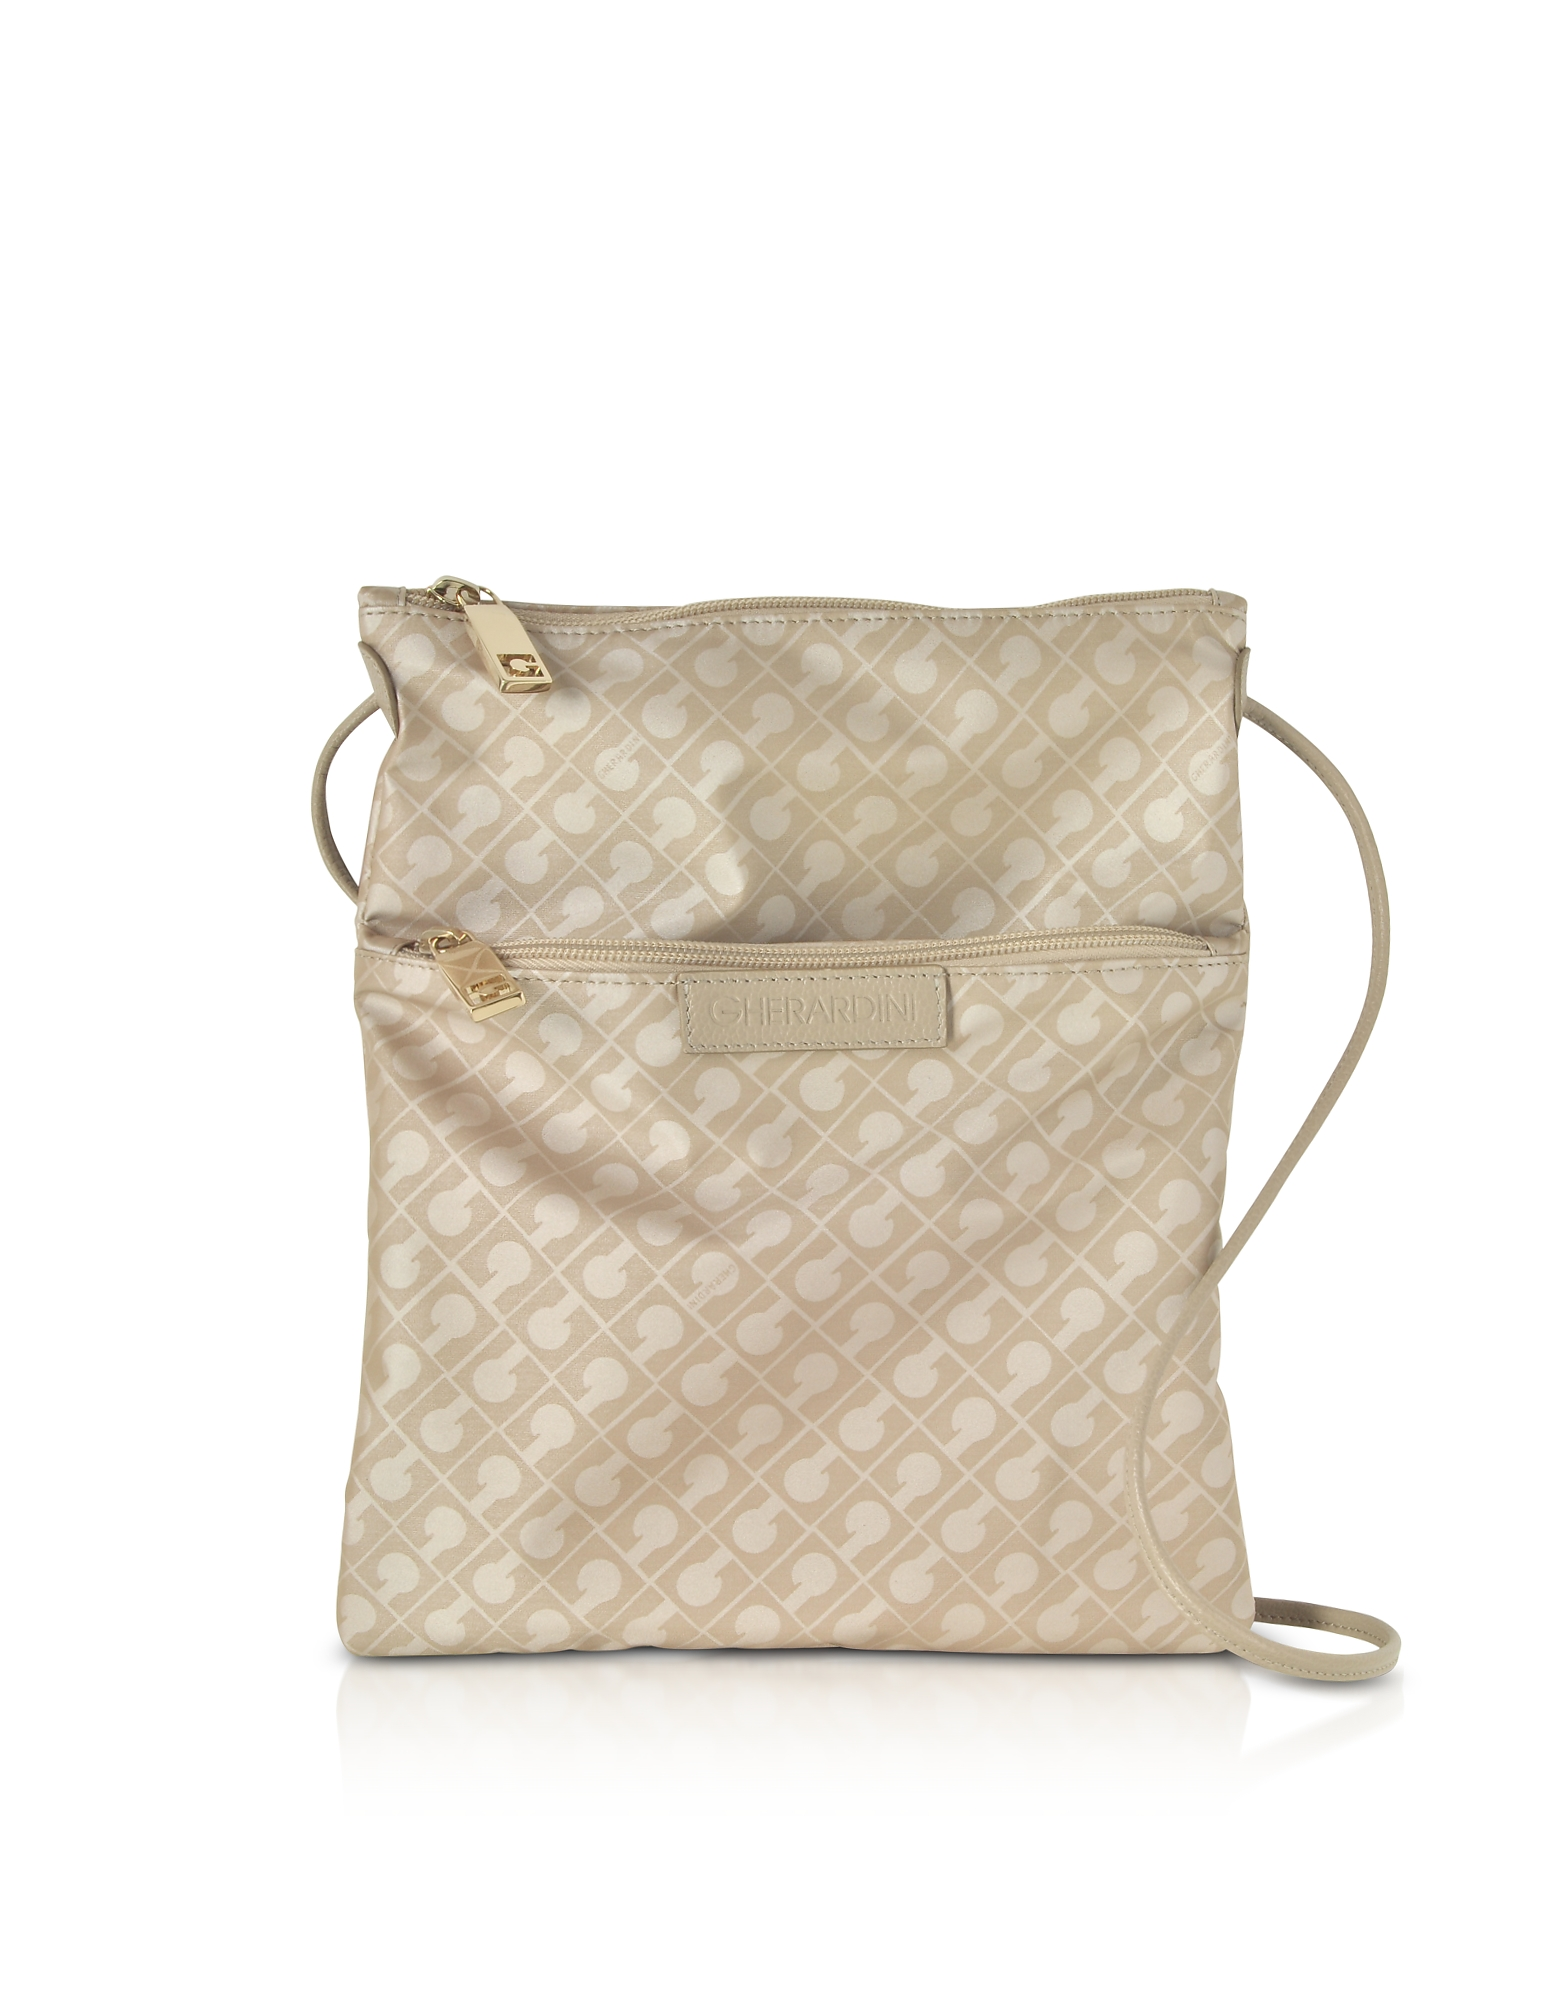 Image of Gherardini Designer Handbags, Clay Signature Fabric and Leather Softy Crossbody Bag w/Zip Front Pocket